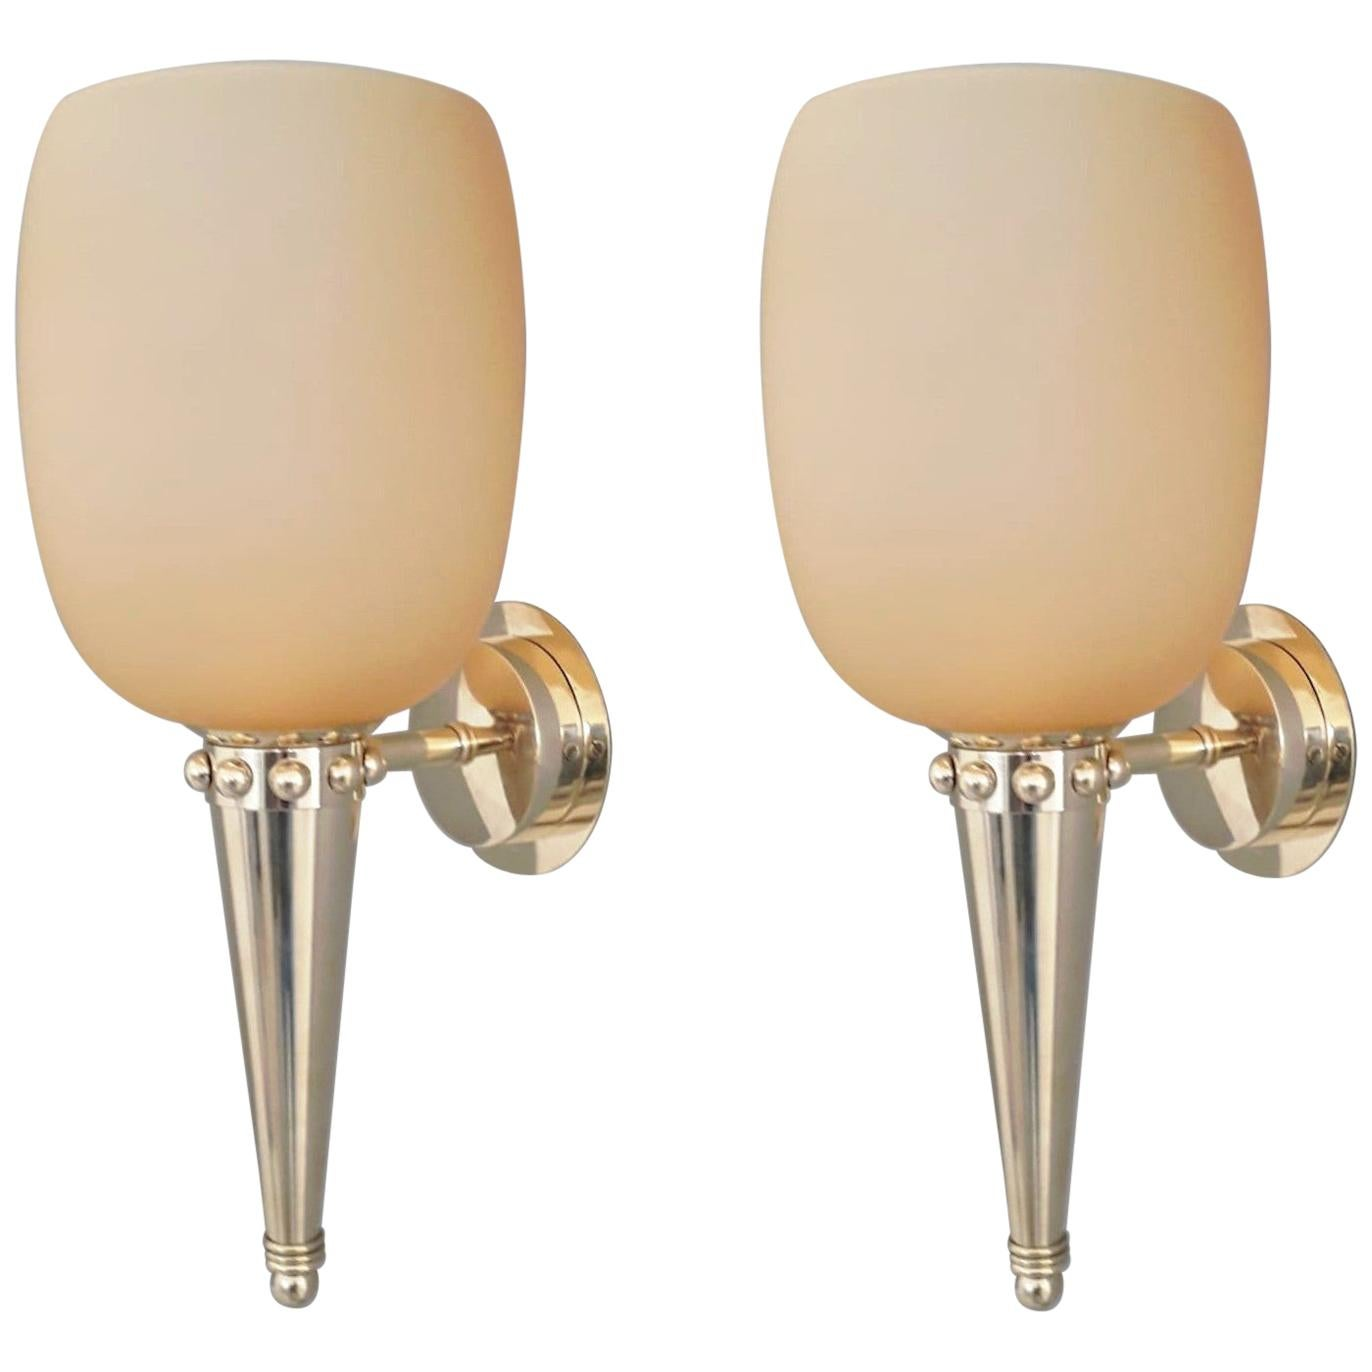 Pair of Torch Sconces by Barovier e Toso, 3 Pairs Available